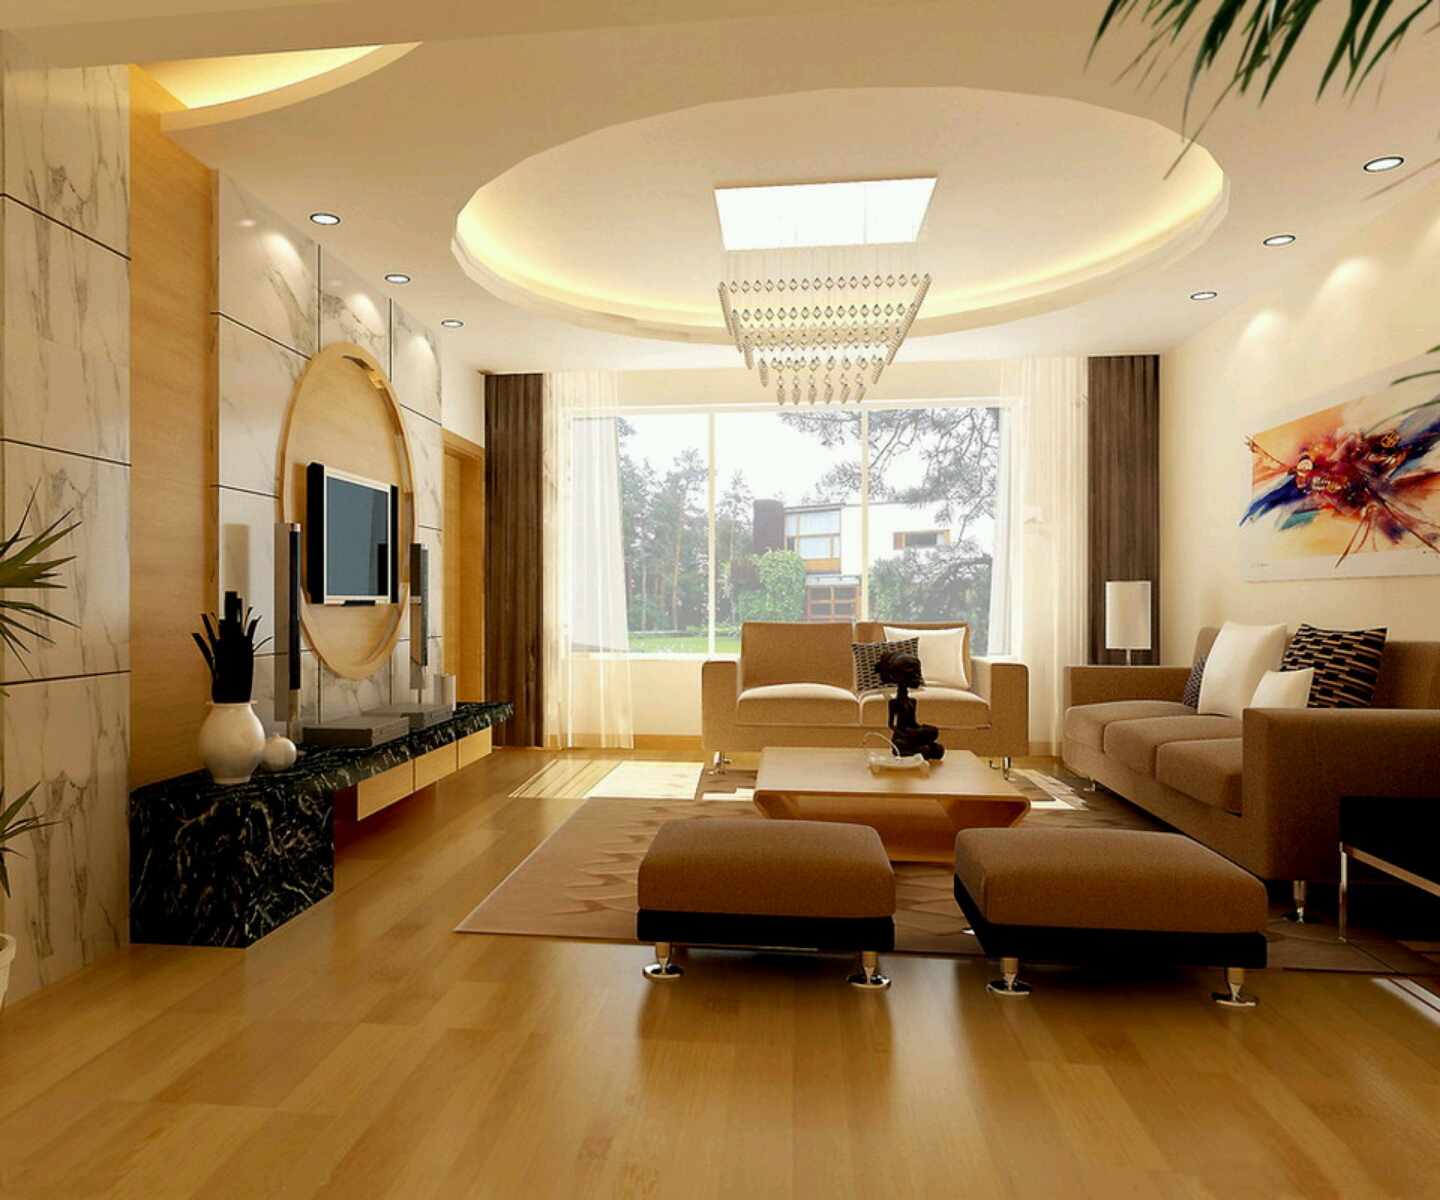 Modern interior decoration living rooms ceiling designs for Modern interior design